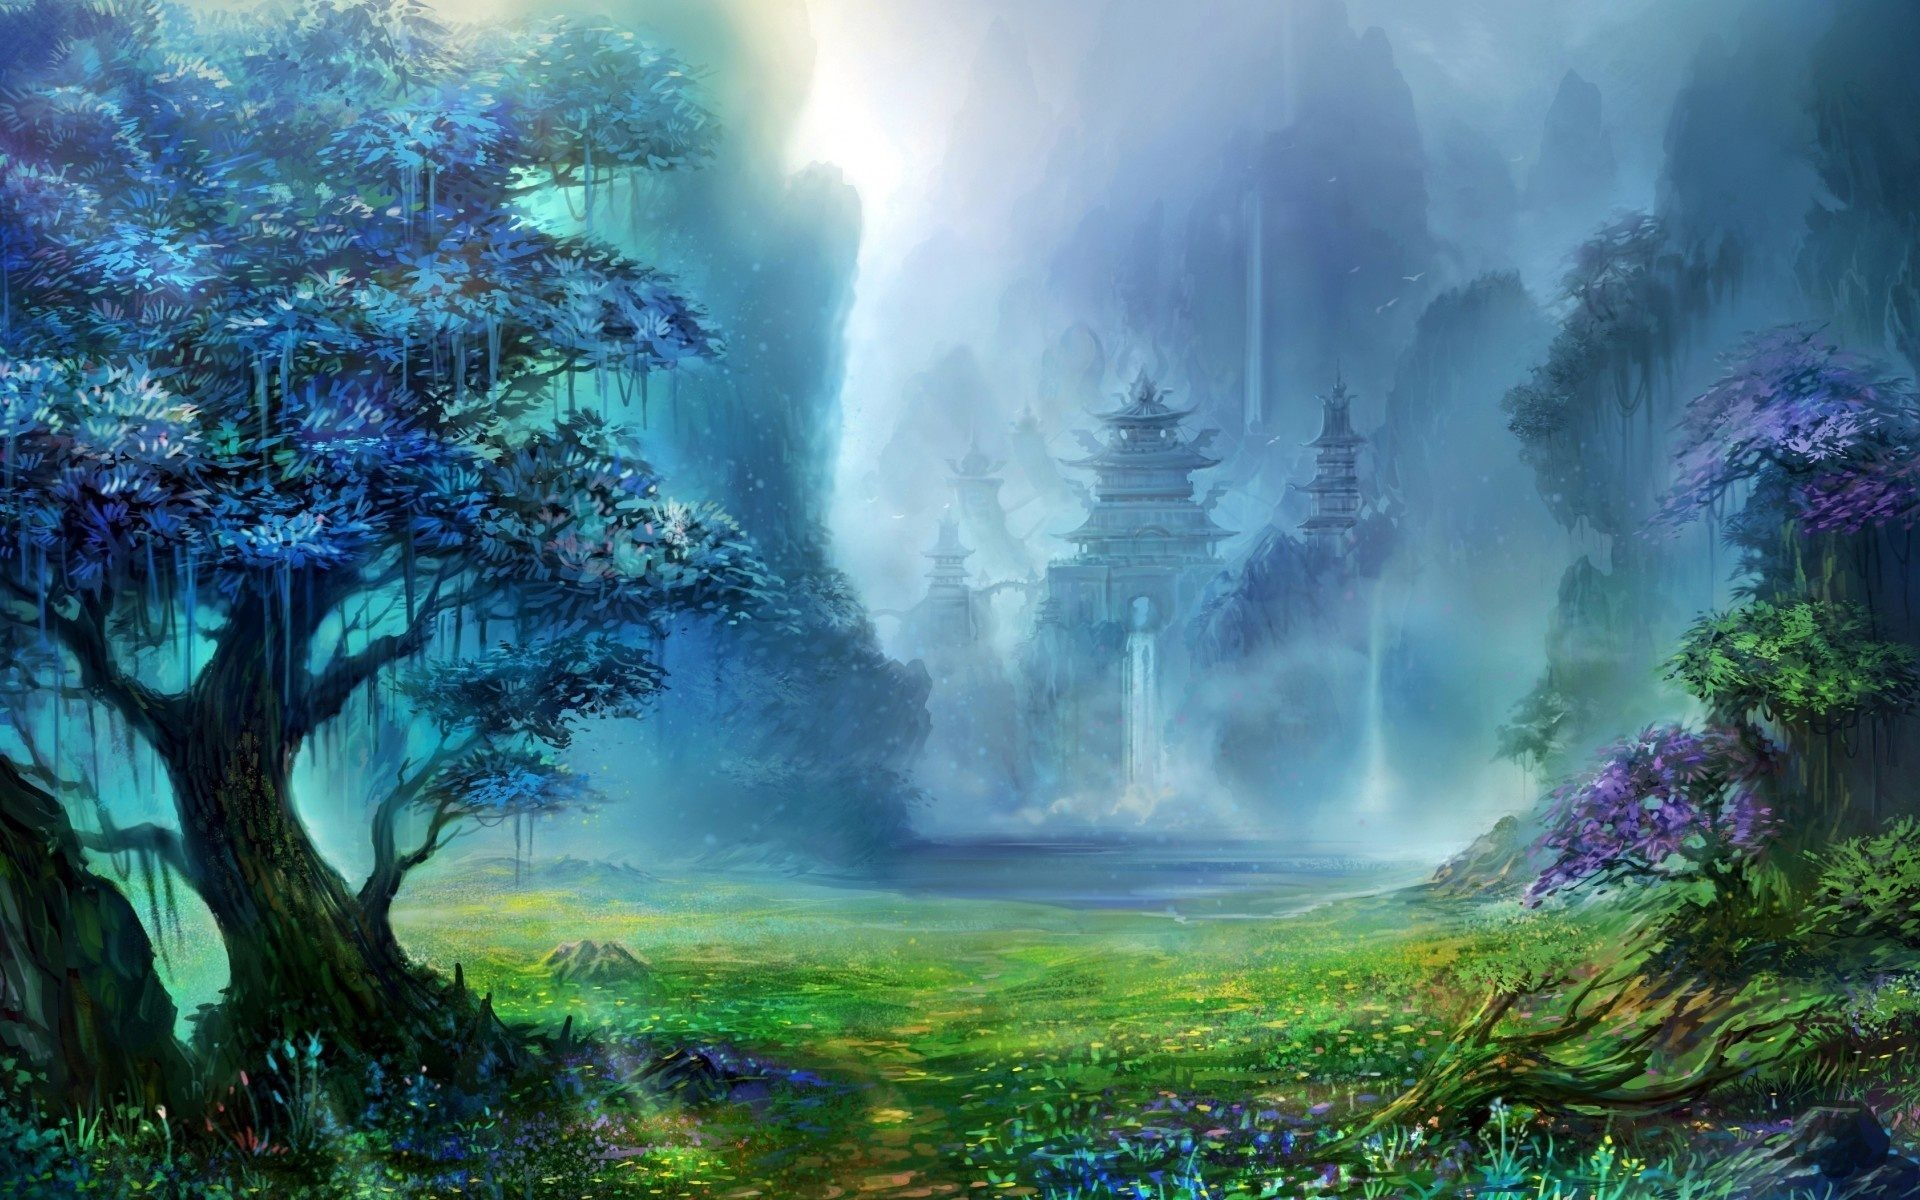 fantasy forest wallpaper high quality resolution with wallpaper hd  resolution on fantasy category similar with black